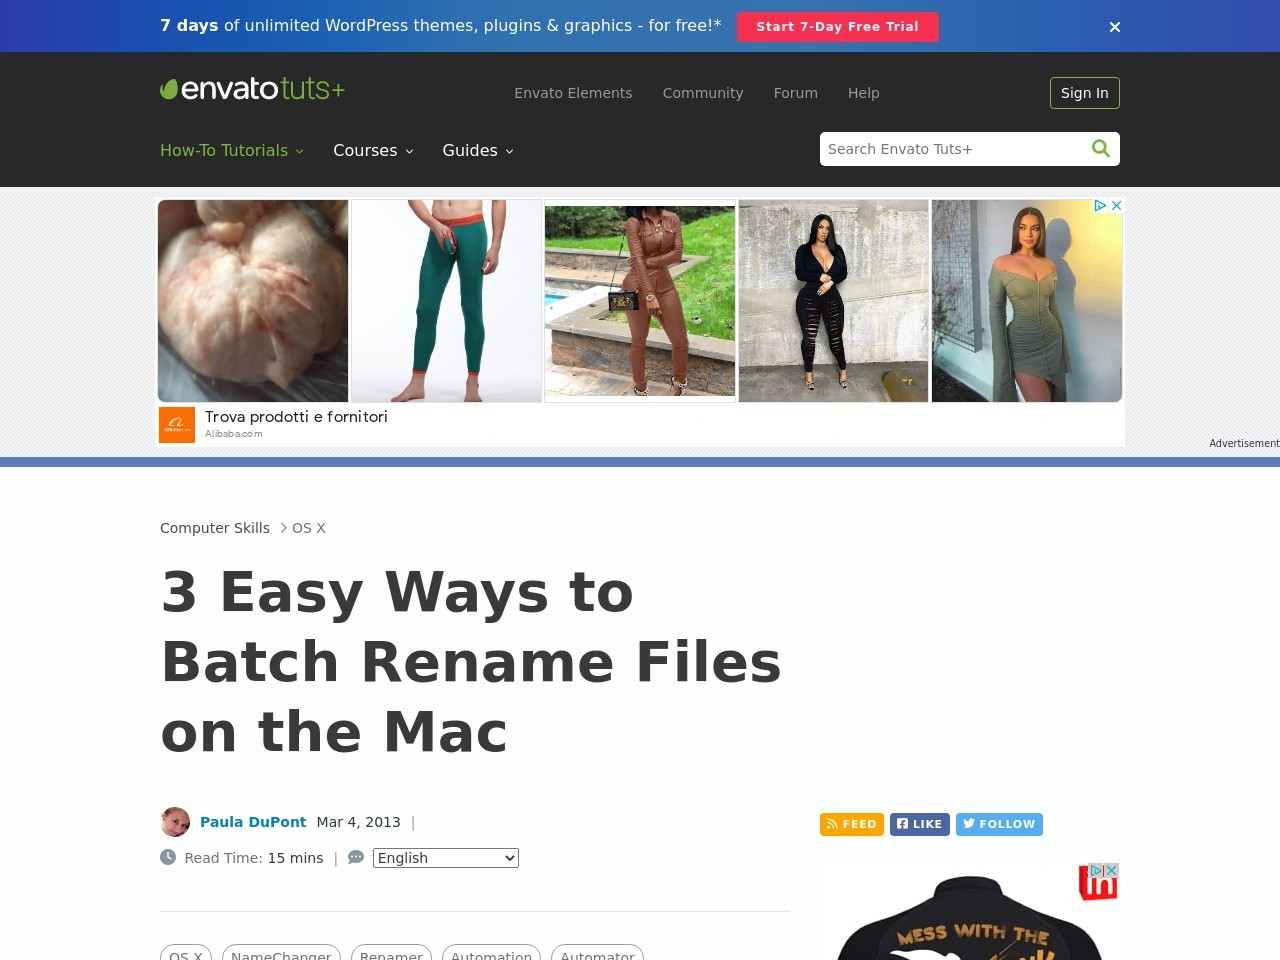 3 Easy Ways to Batch Rename Files on the Mac | Mactuts+